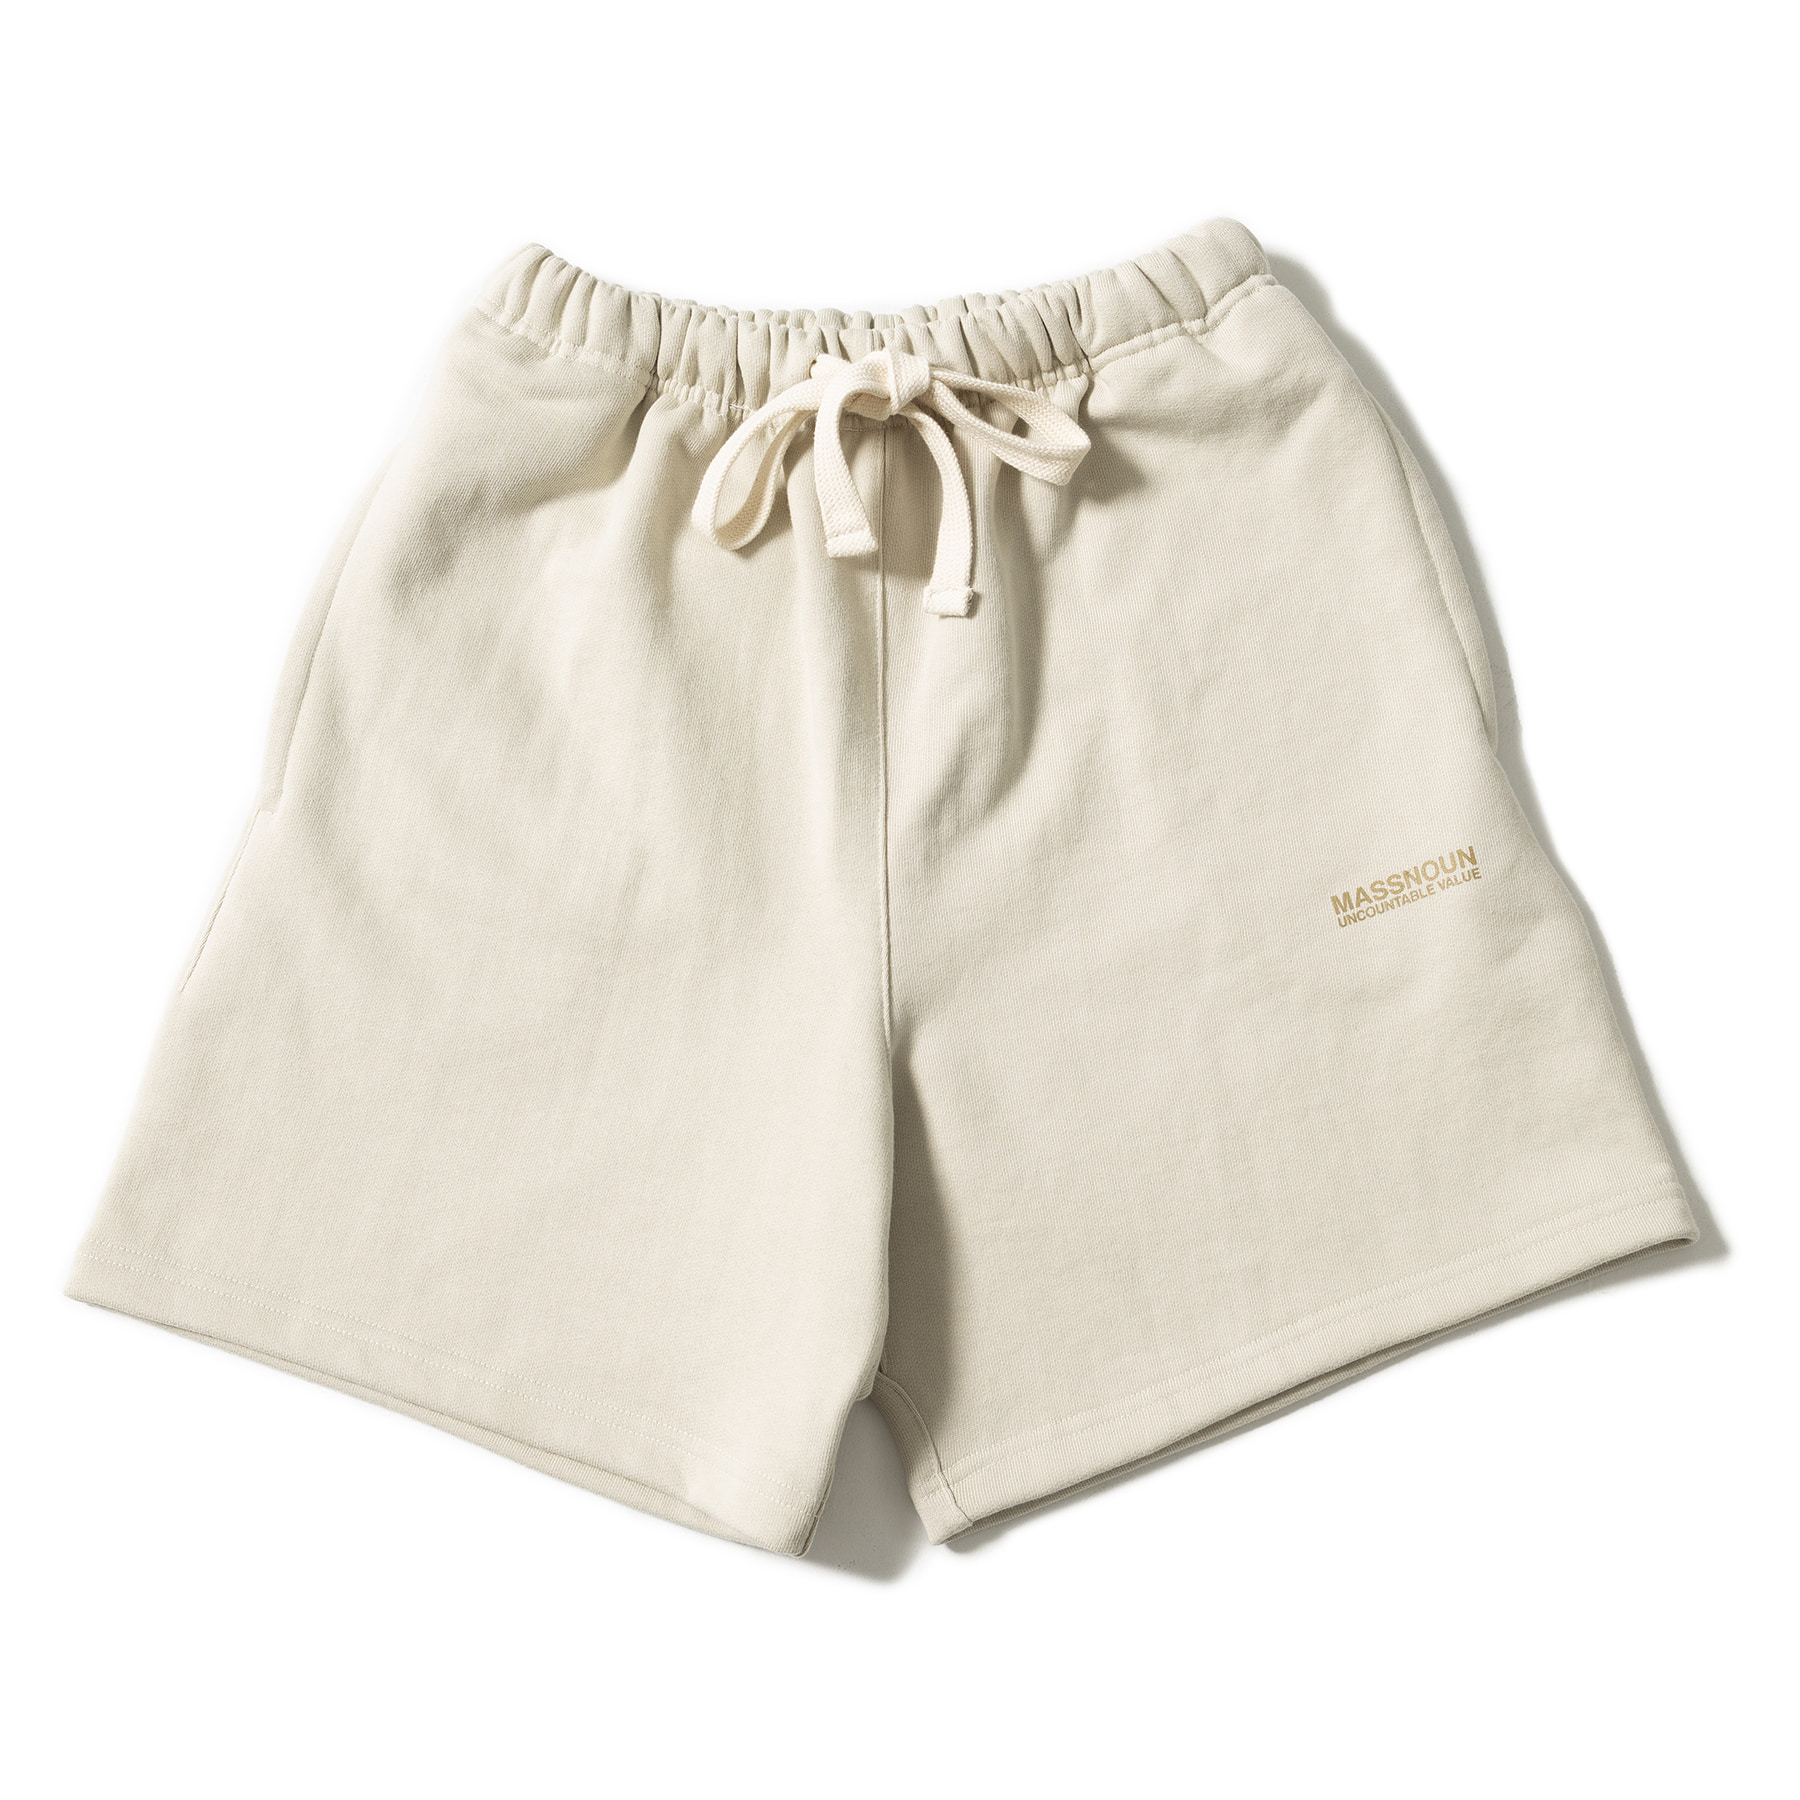 SCOTCH TRAINING SHORT PANTS MSOSP001-BG